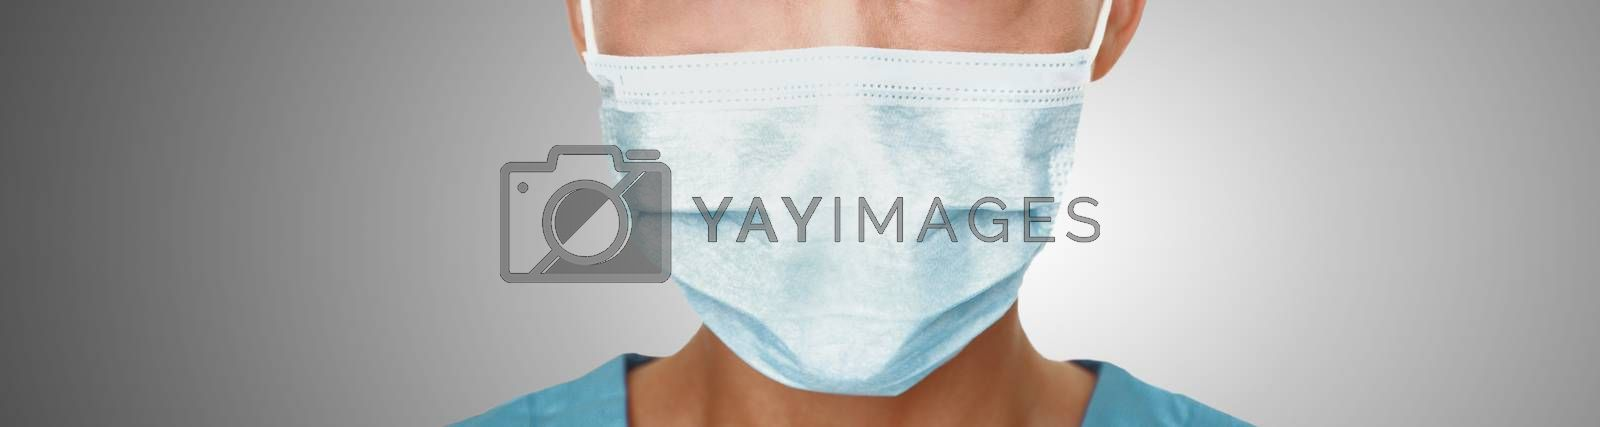 Coronavirus surgical mask doctor wearing face protective mask against corona virus banner panoramic medical professional preventive gear by Maridav